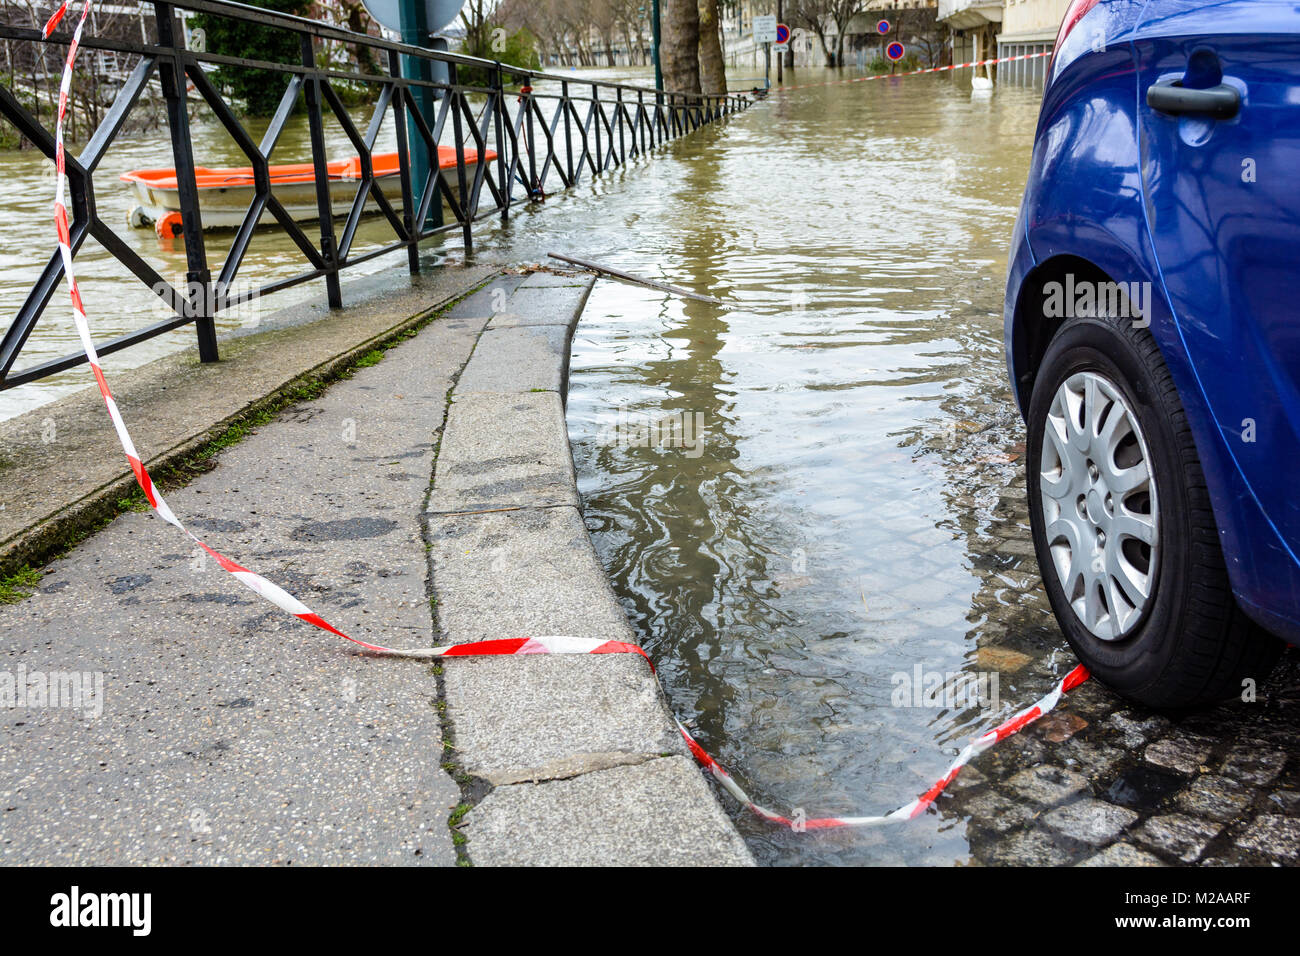 During the winter flood of the Seine in Paris, in January 2018, the level of the floodwater reaches the rear wheels - Stock Image